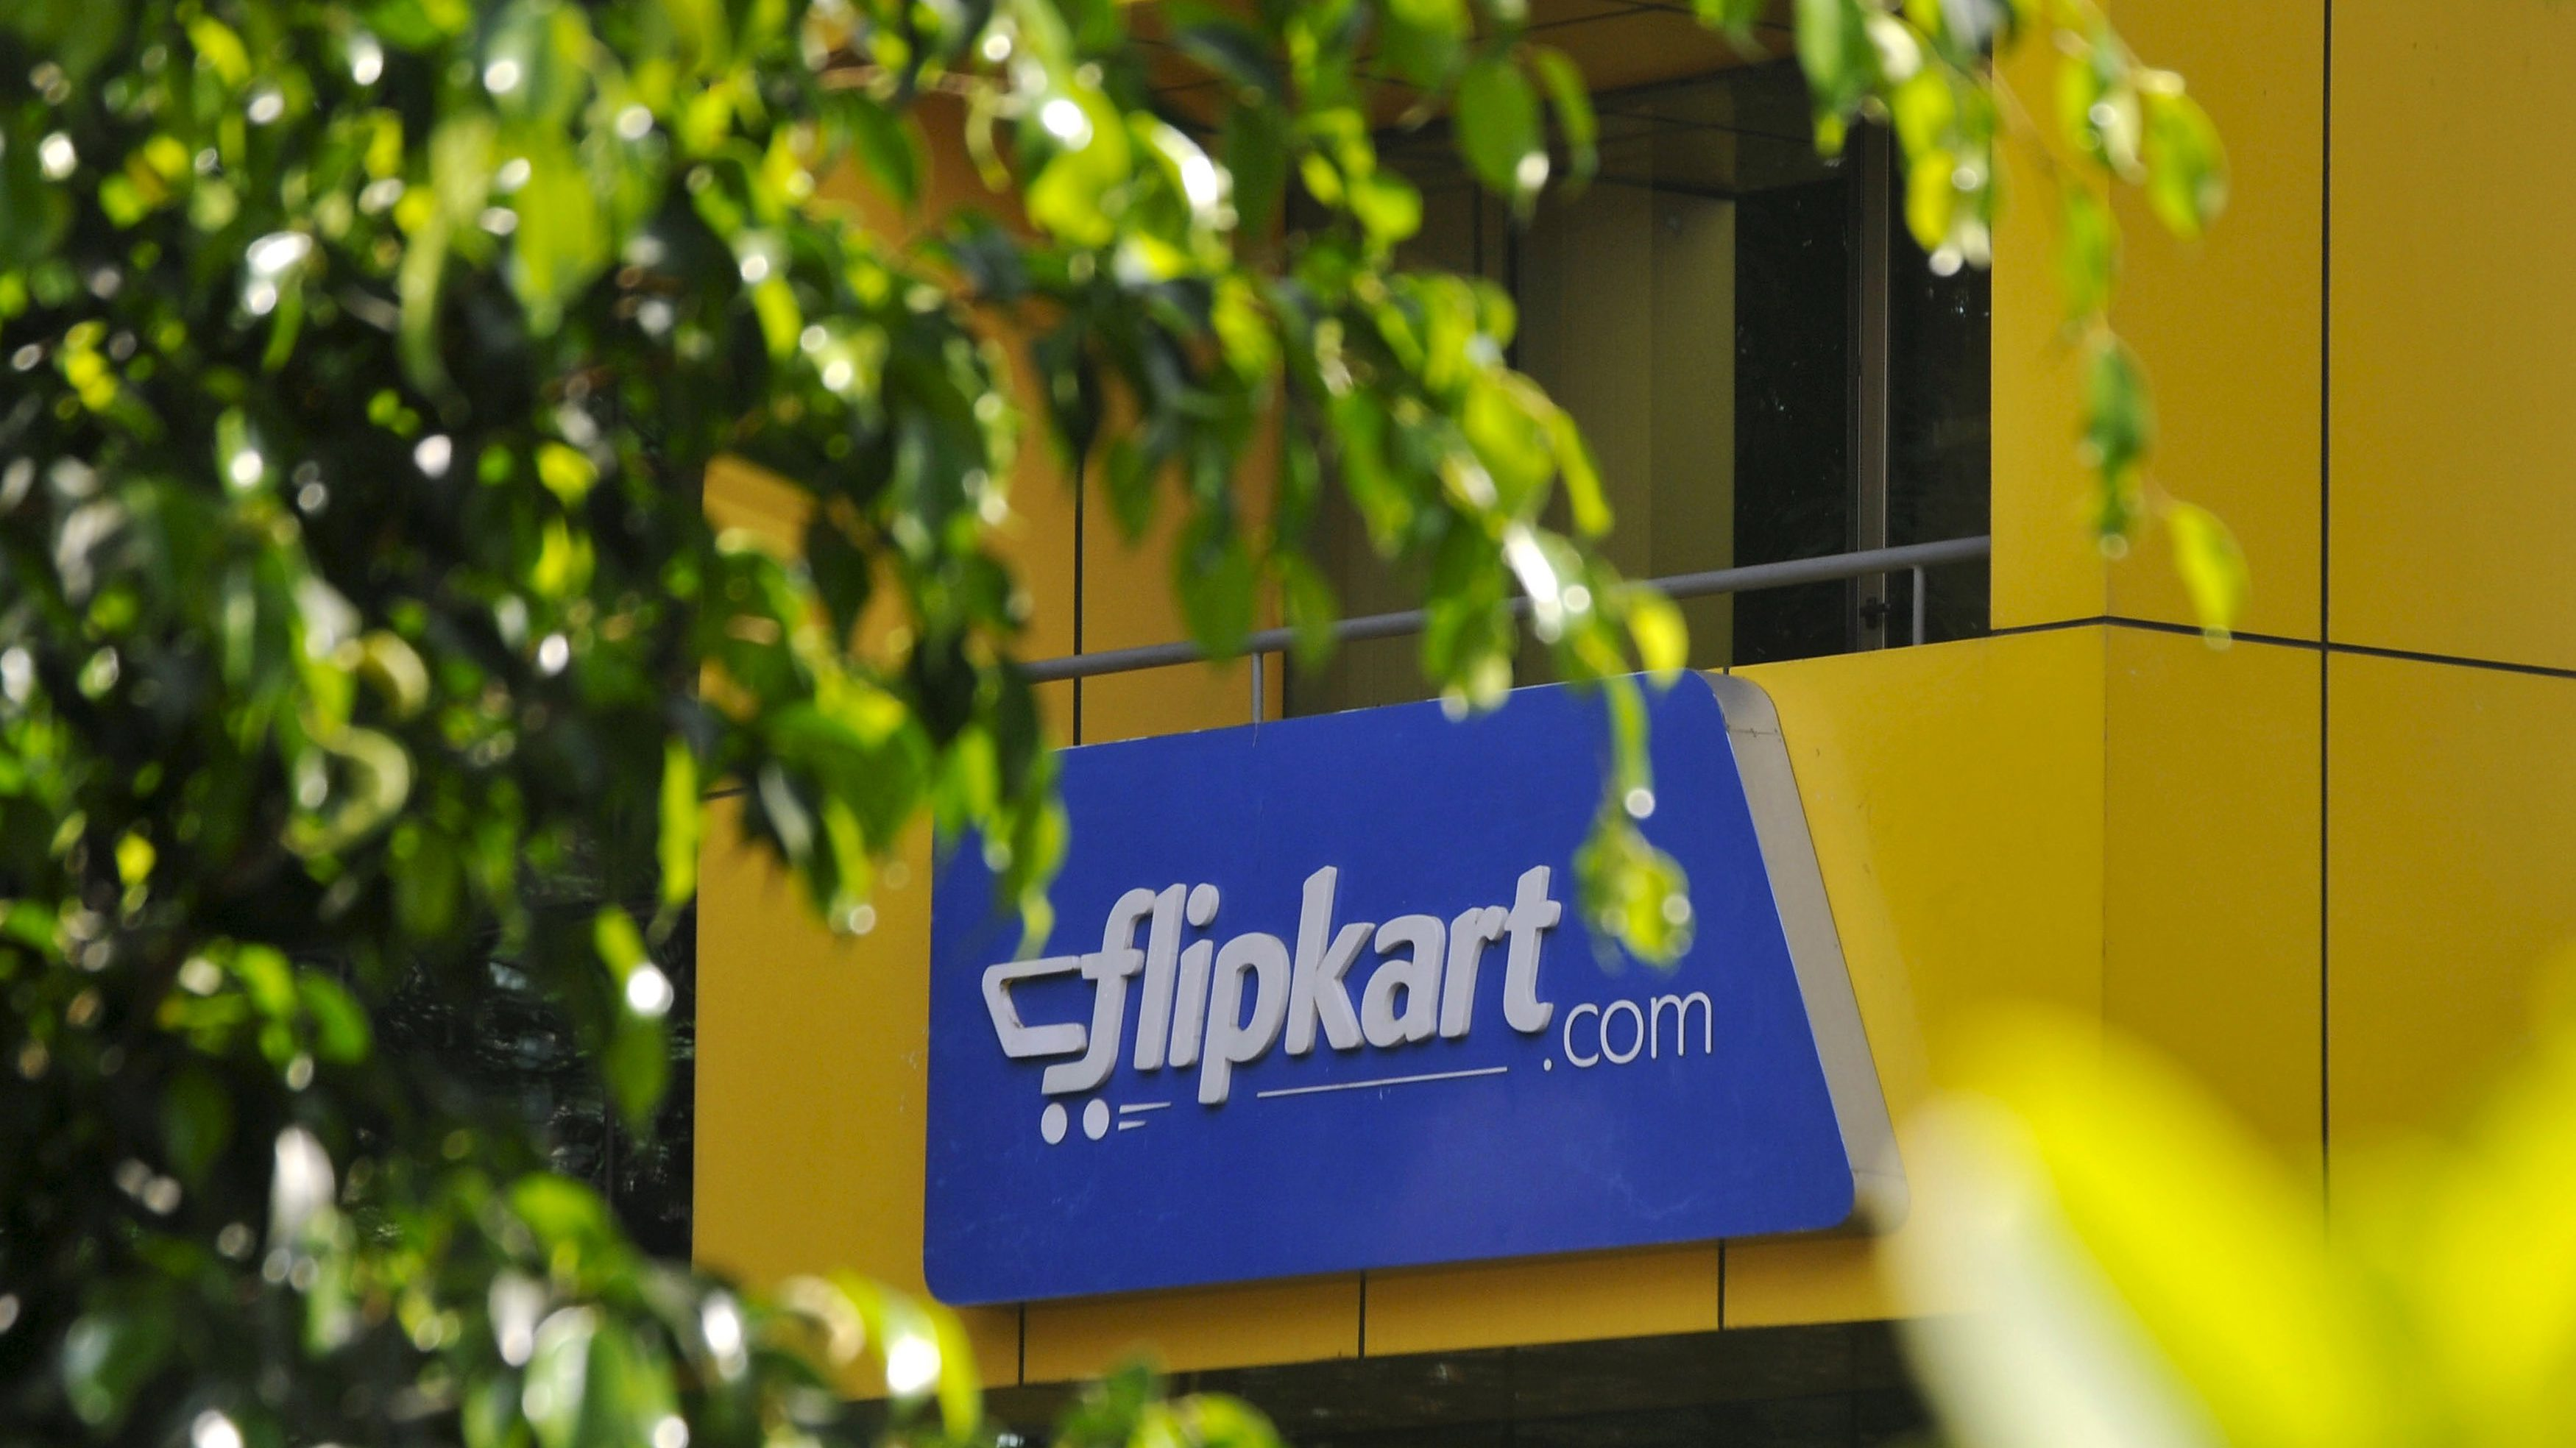 The logo of India's largest online marketplace Flipkart is seen on a building in Bengaluru, India, April 22, 2015. After losing top engineering talent for years to America's tech heartland of Silicon Valley, India is luring them back as an e-commerce boom sparks a thriving start-up culture, unprecedented pay, and perks including free healthcare for in-laws. Picture taken April 22, 2015. To match INDIA-ECOMMERCE/WORKERS.